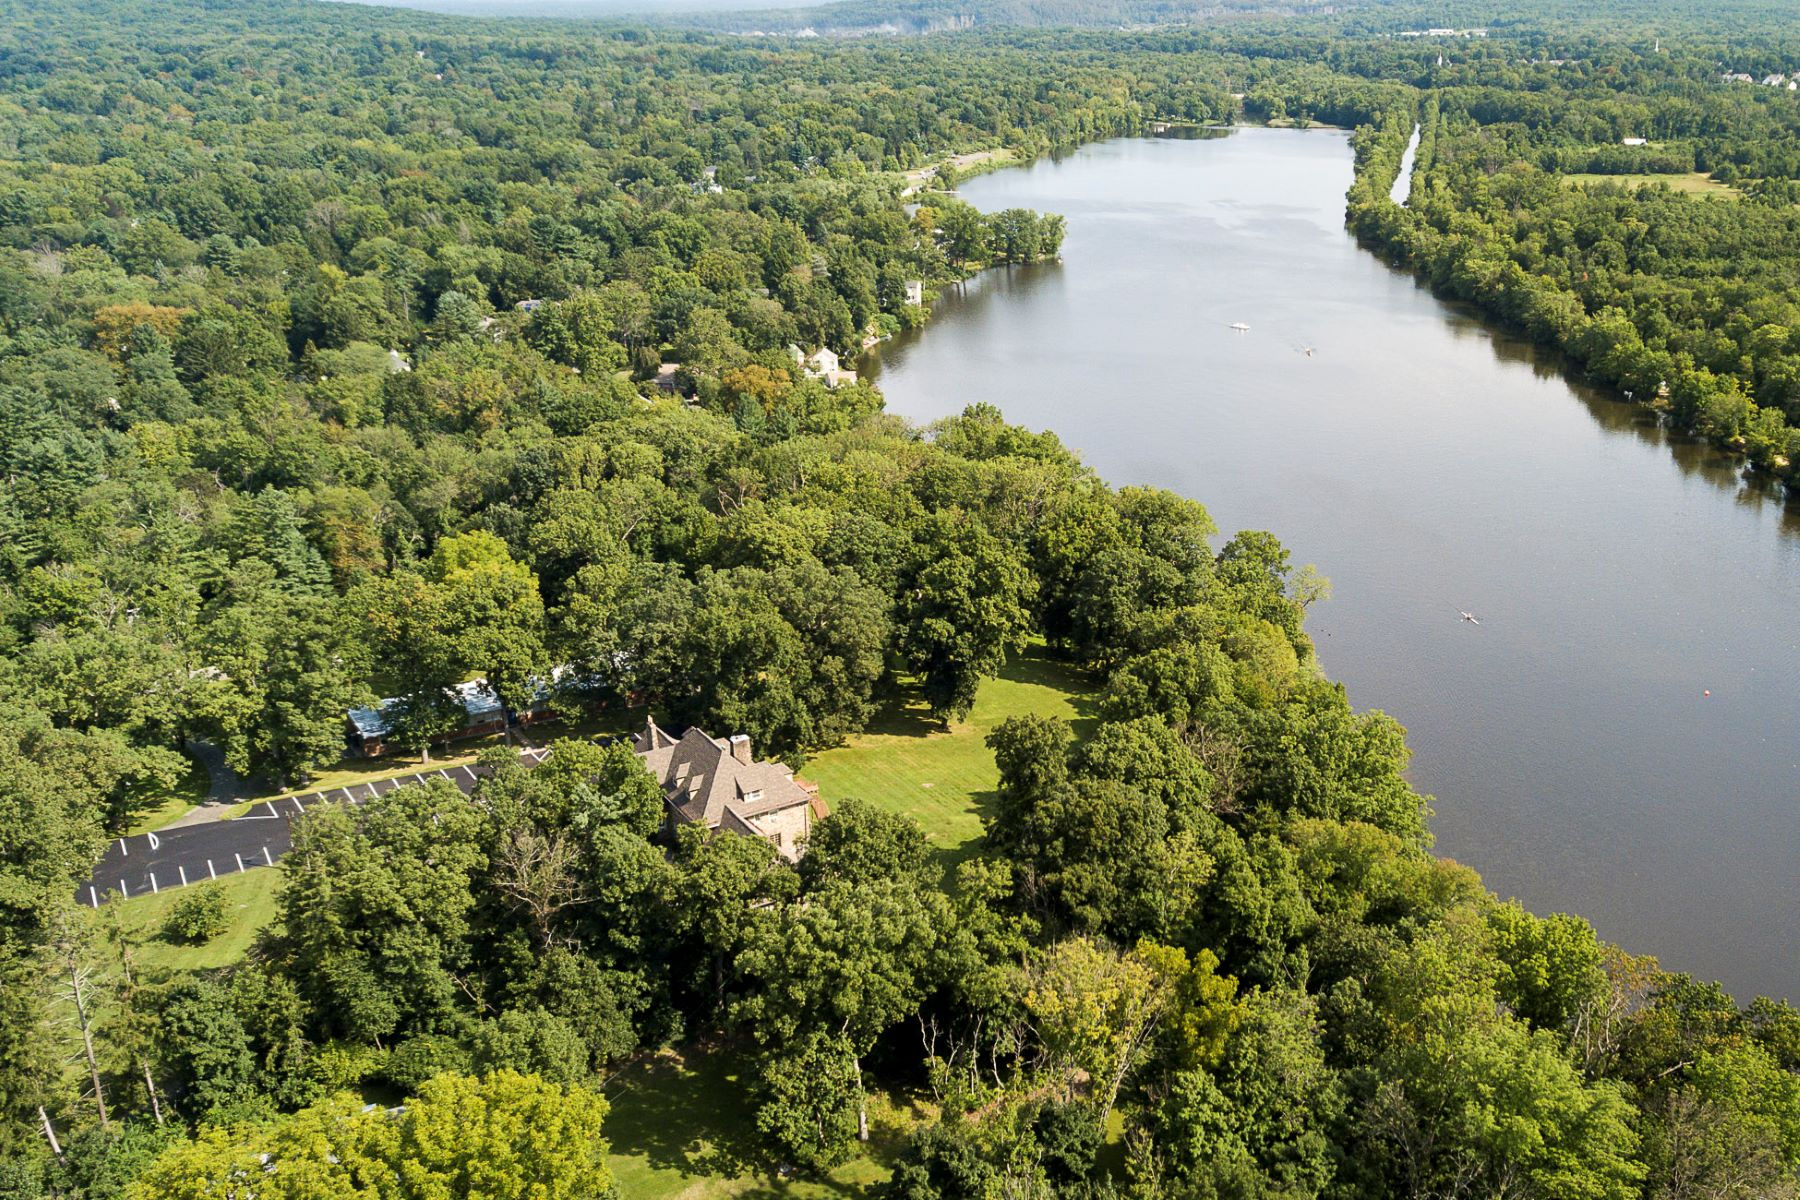 Property のために 売買 アット Unprecedented Lake-Front Development Opportunity 601 Prospect Avenue, Princeton, ニュージャージー 08540 アメリカ